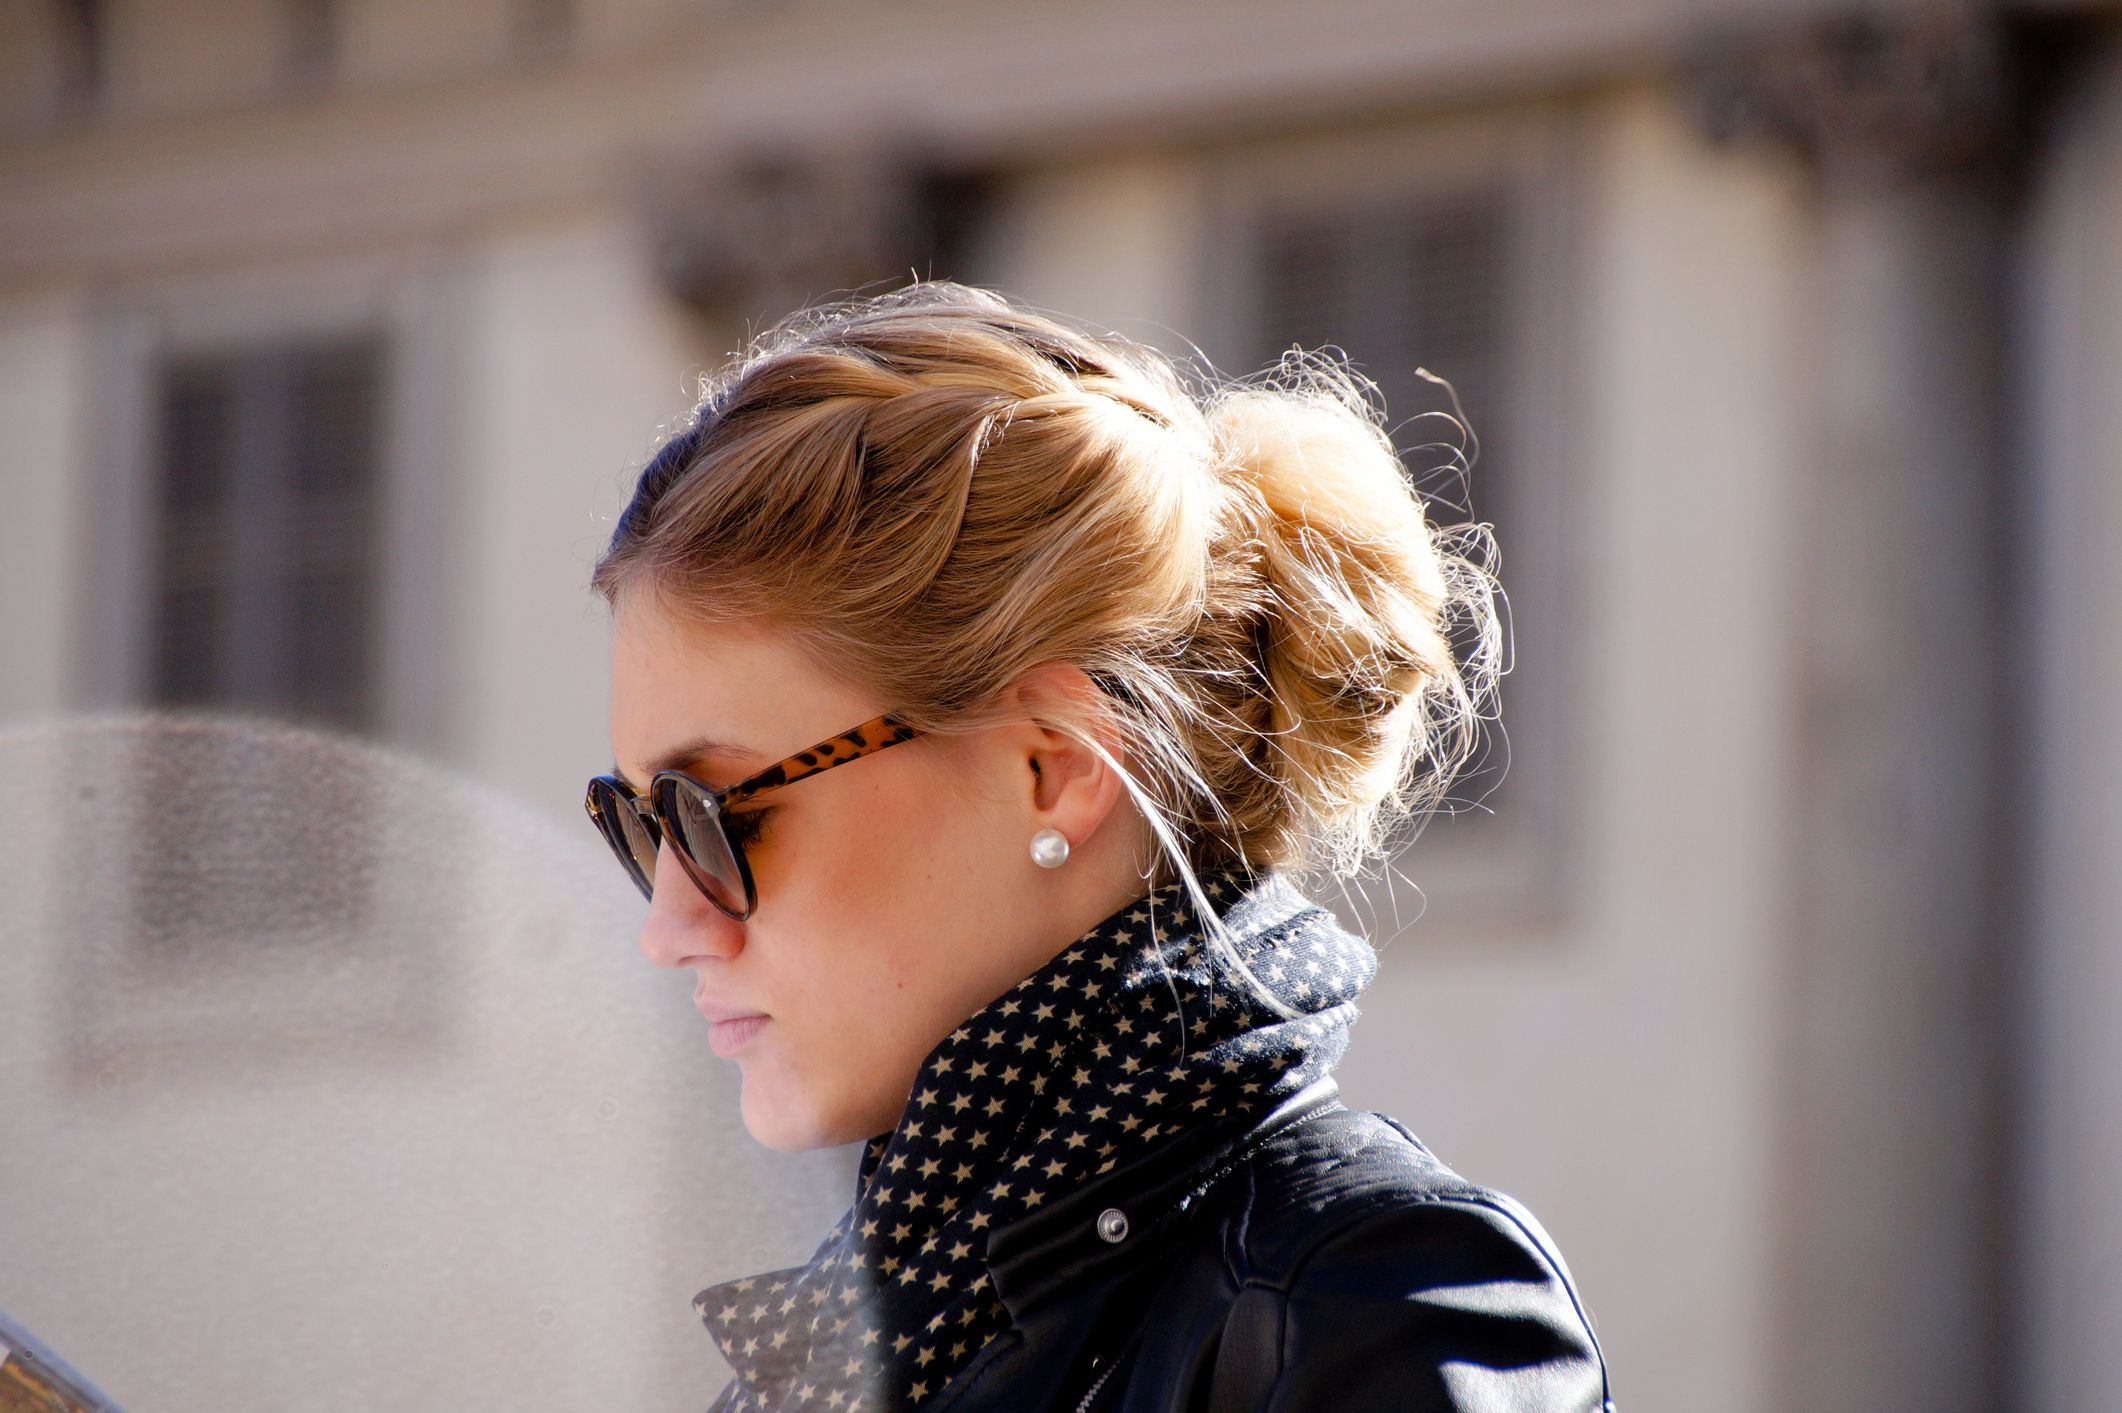 Dirty Hair Tips for the Perfect Updo